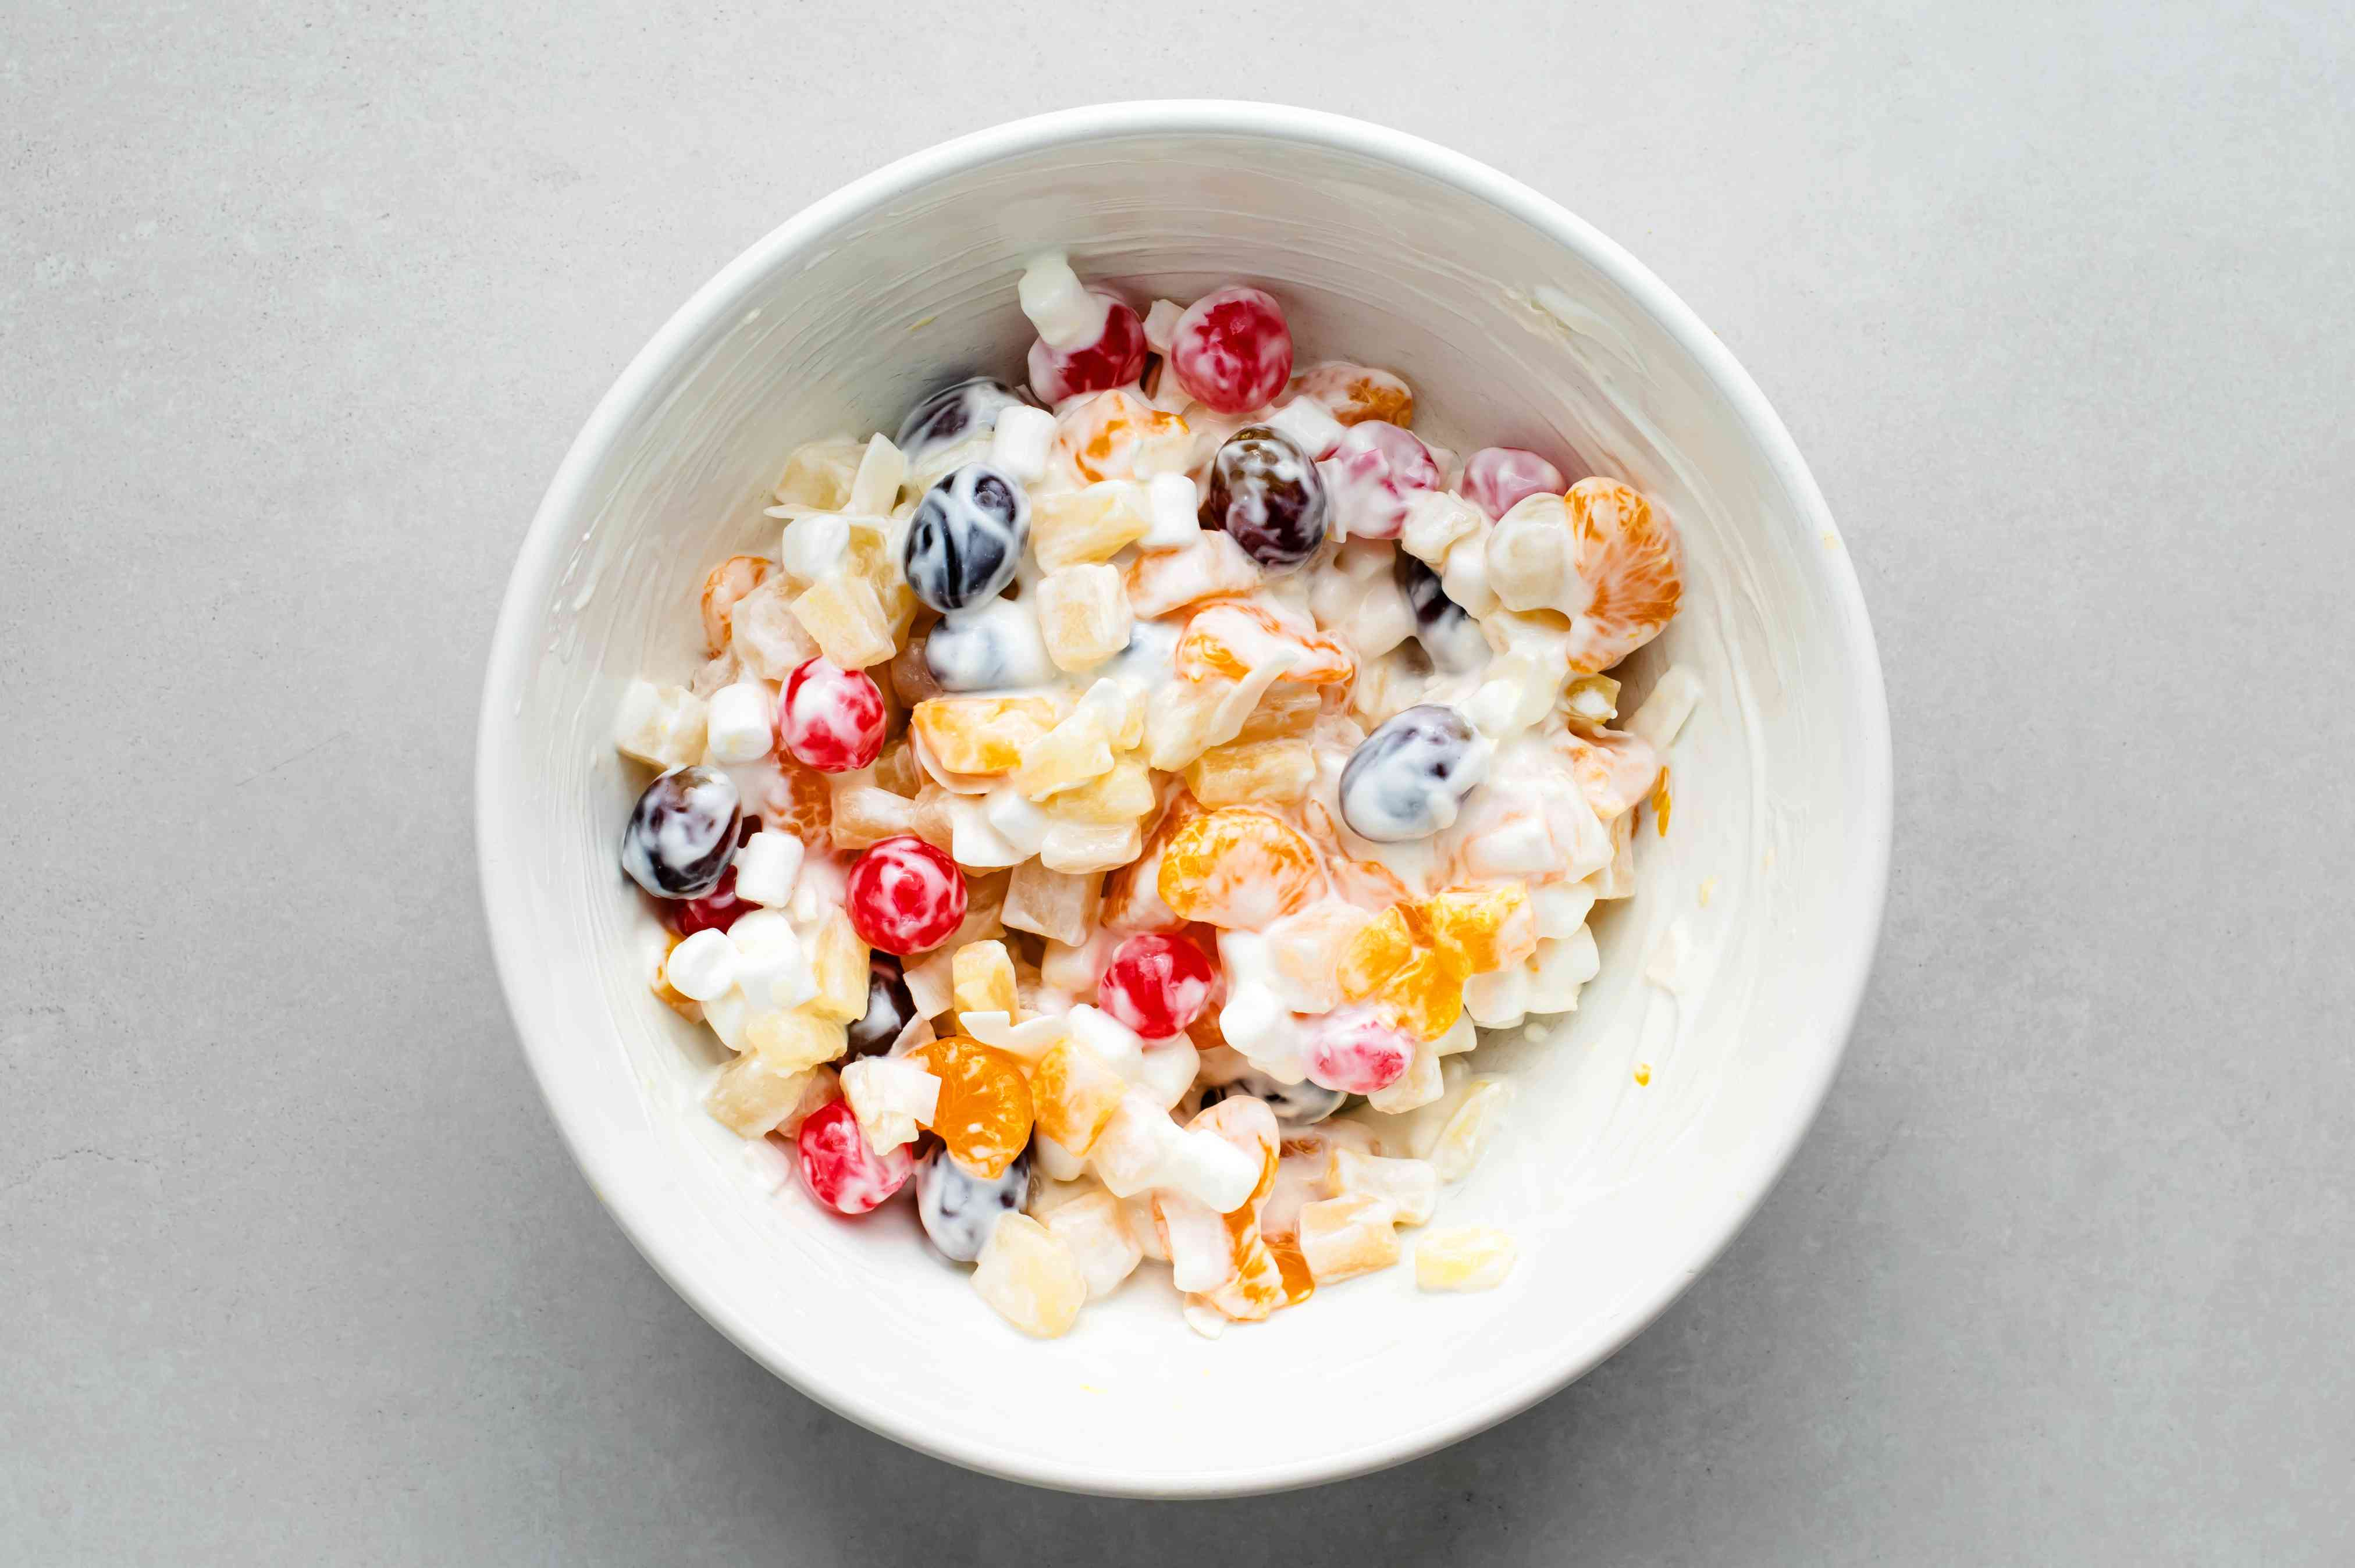 rained fruits, marshmallows, sour cream, and coconut in a bowl